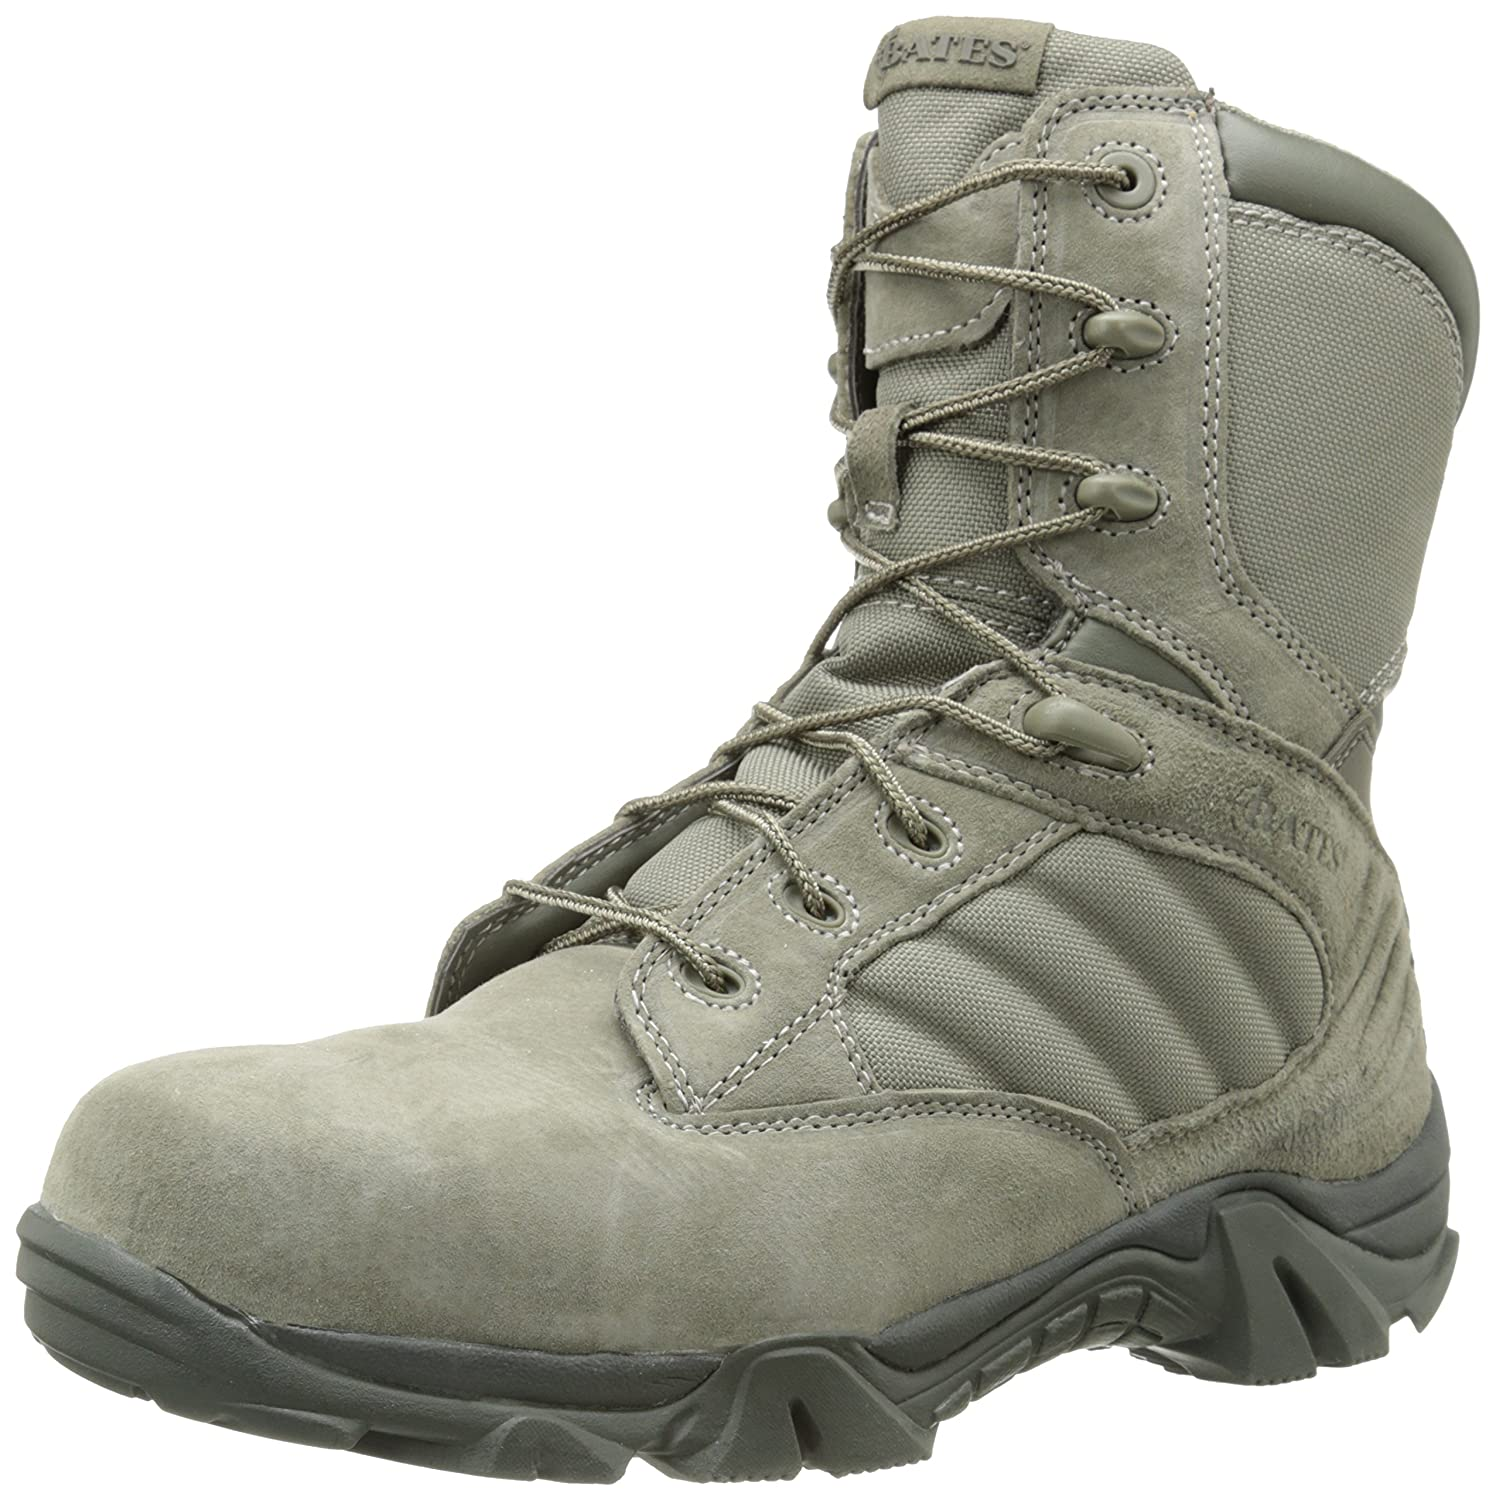 942fc6bd4e8 Amazon.com  Bates Men s GX-8 Comp Toe Side Zip Work Boot  Shoes